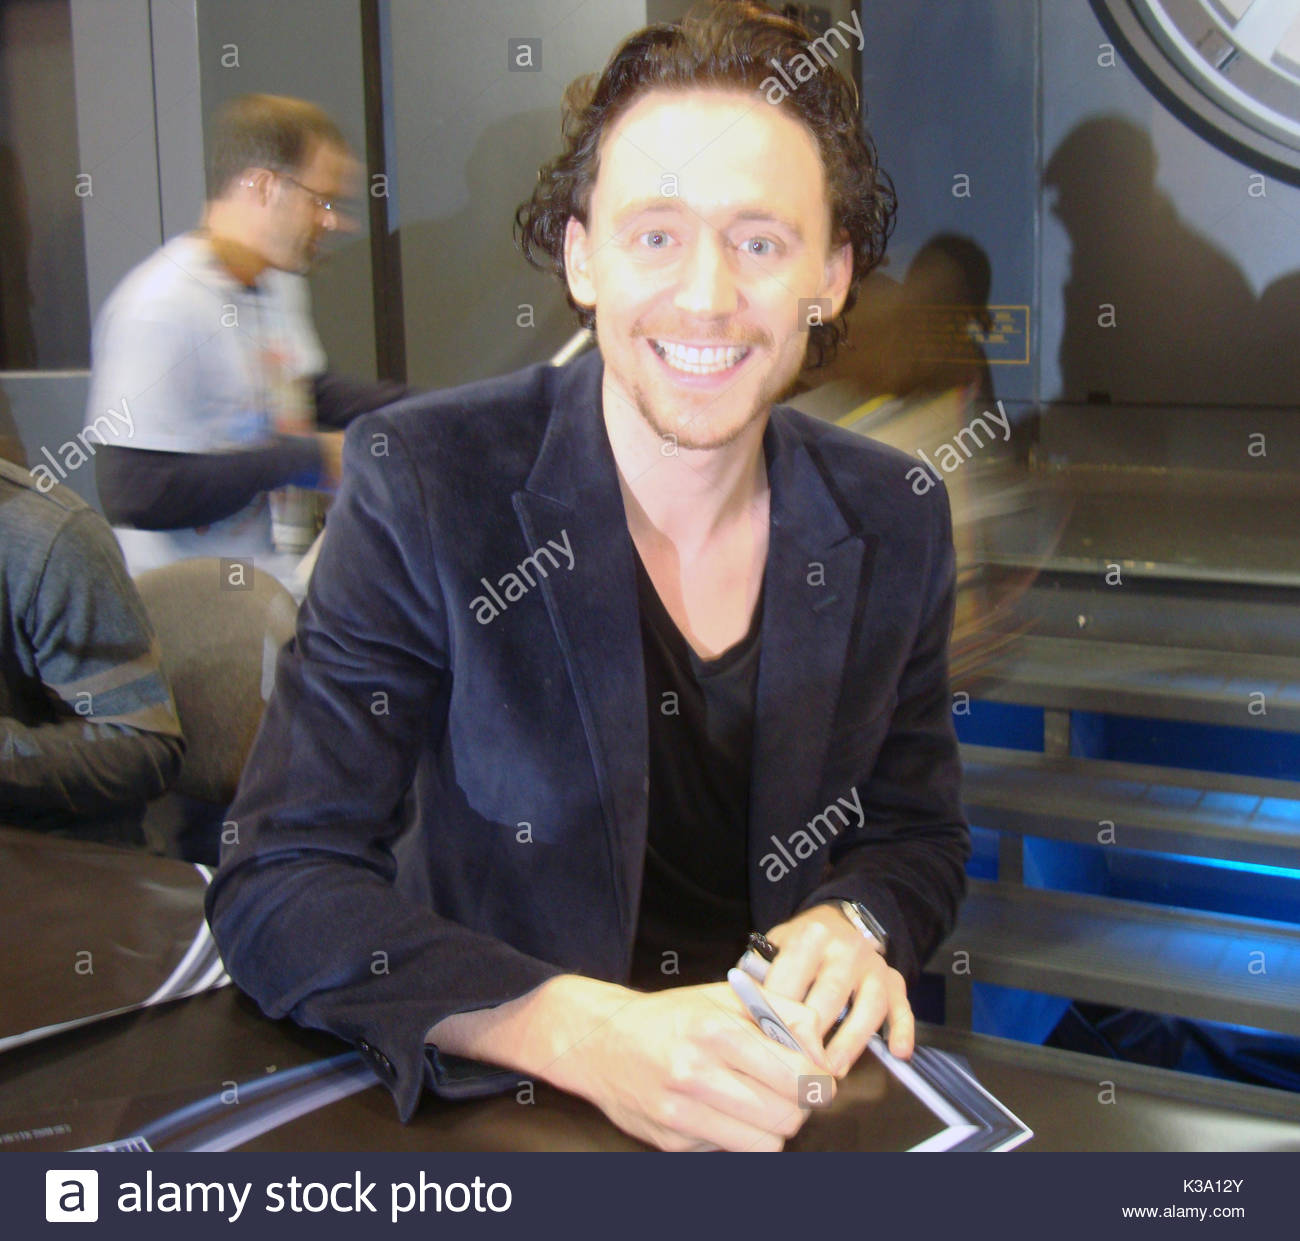 Tom Hiddleston Chris Evans And Tom Hiddleston Meet Fans At A